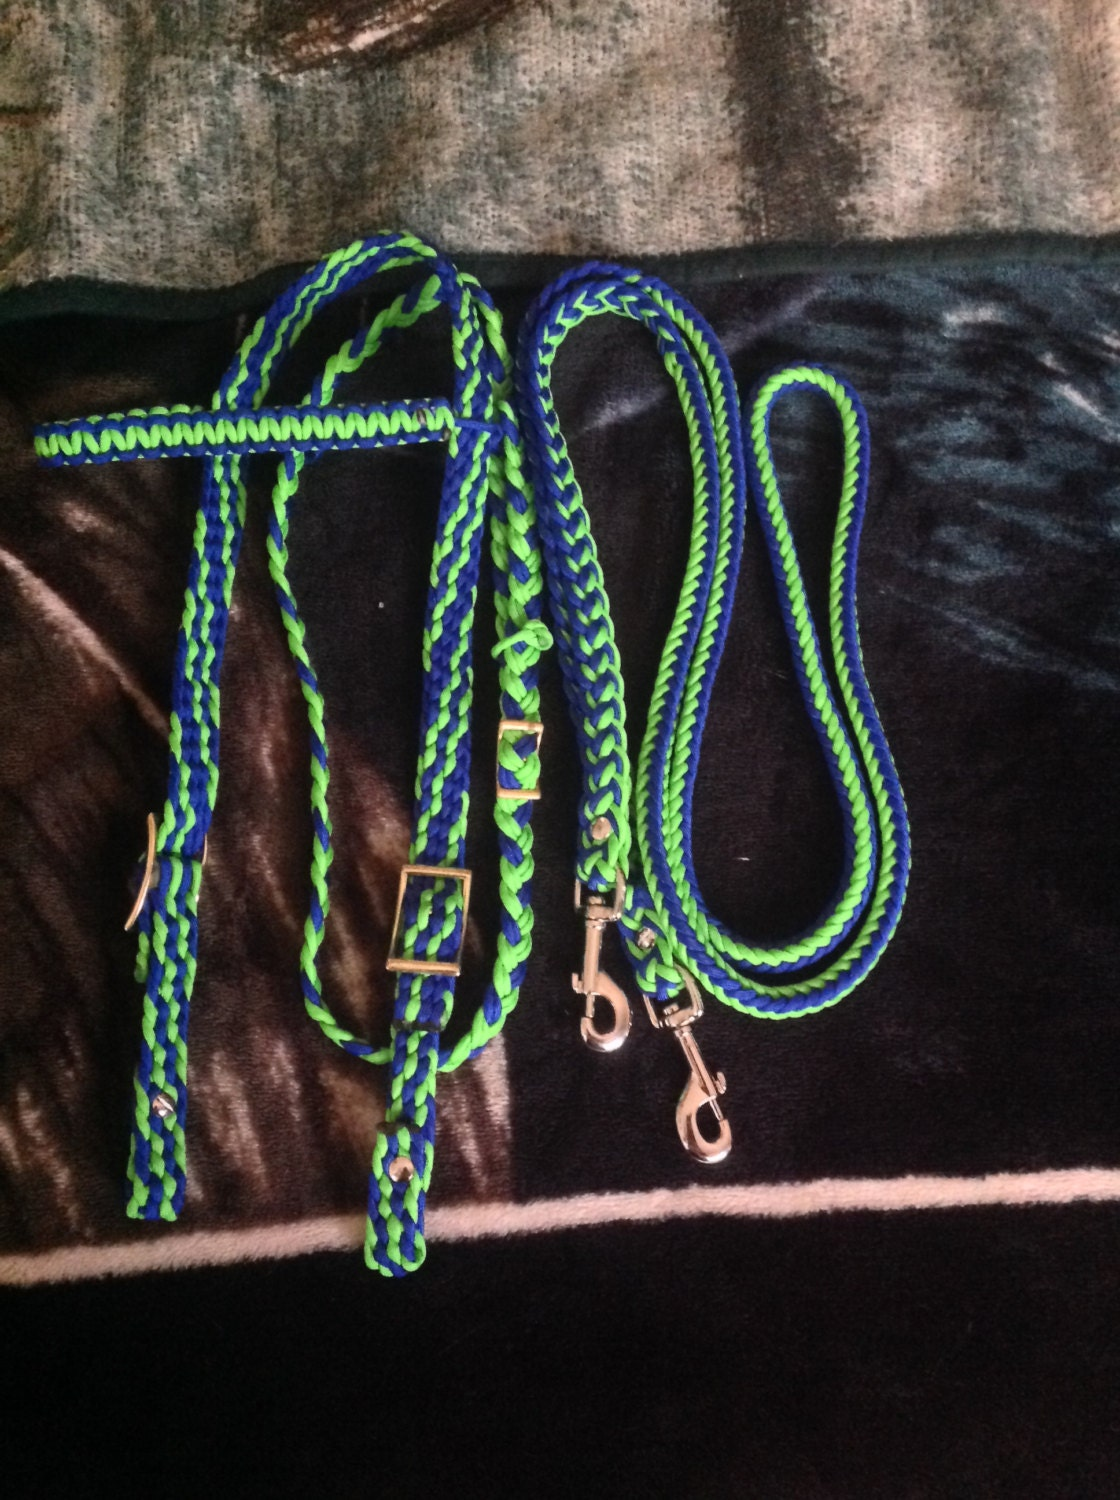 how to make a horse halter out of paracord